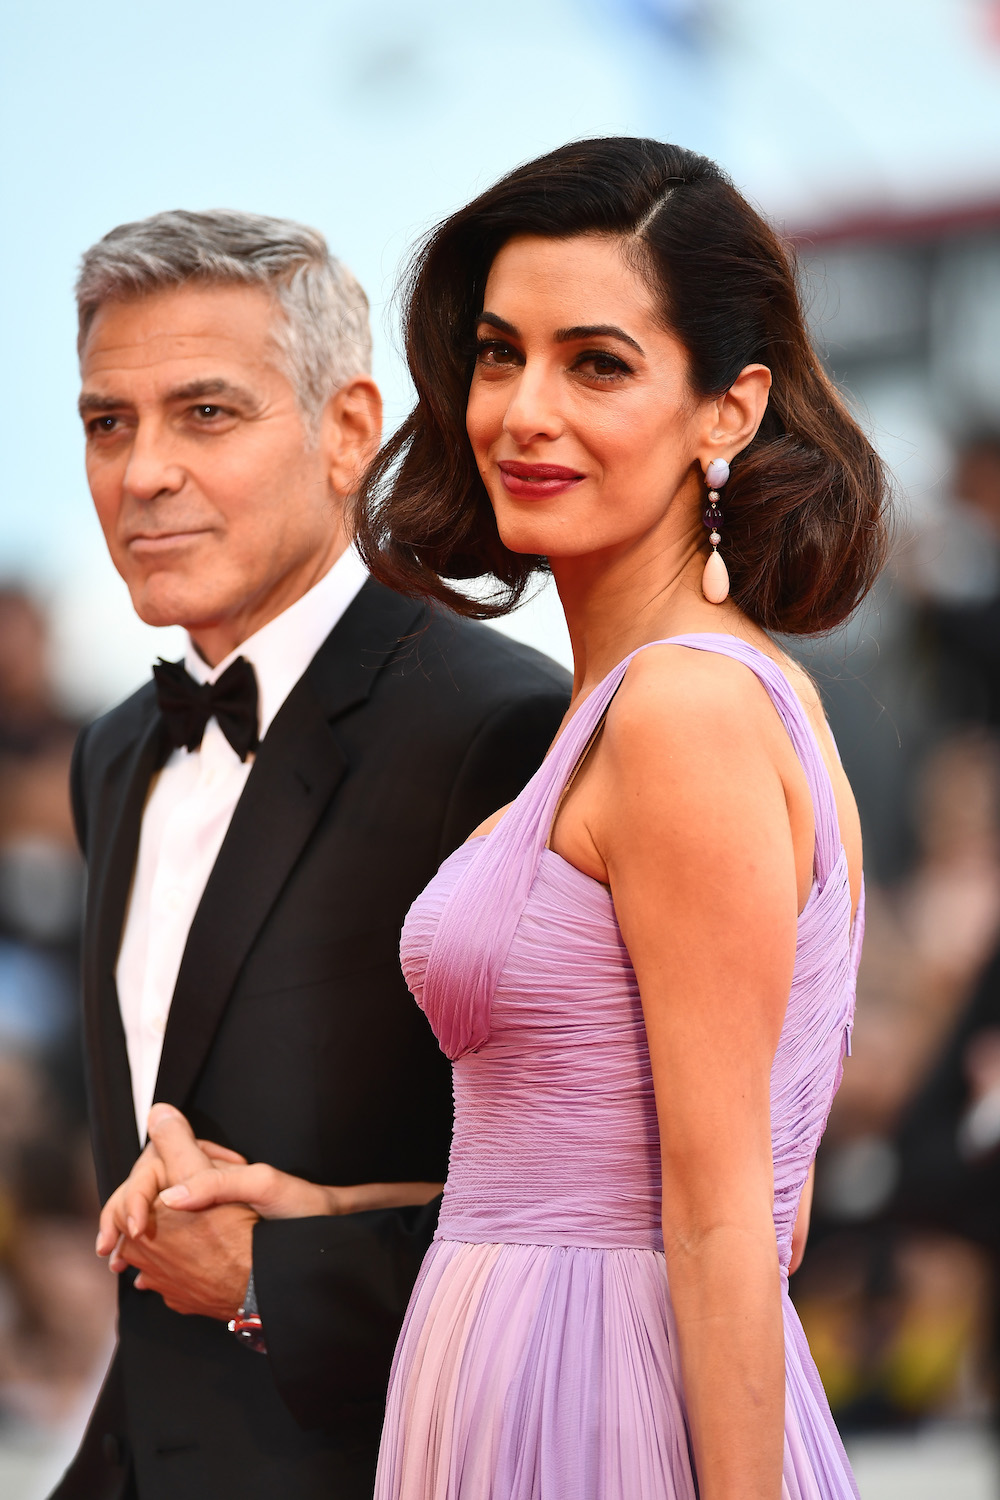 VENICE, ITALY - SEPTEMBER 02: George Clooney and Amal Clooney walk the red carpet ahead of the 'Suburbicon' screening during the 74th Venice Film Festival at Sala Grande on September 2, 2017 in Venice, Italy. (Photo by Ian Gavan/Getty Images)